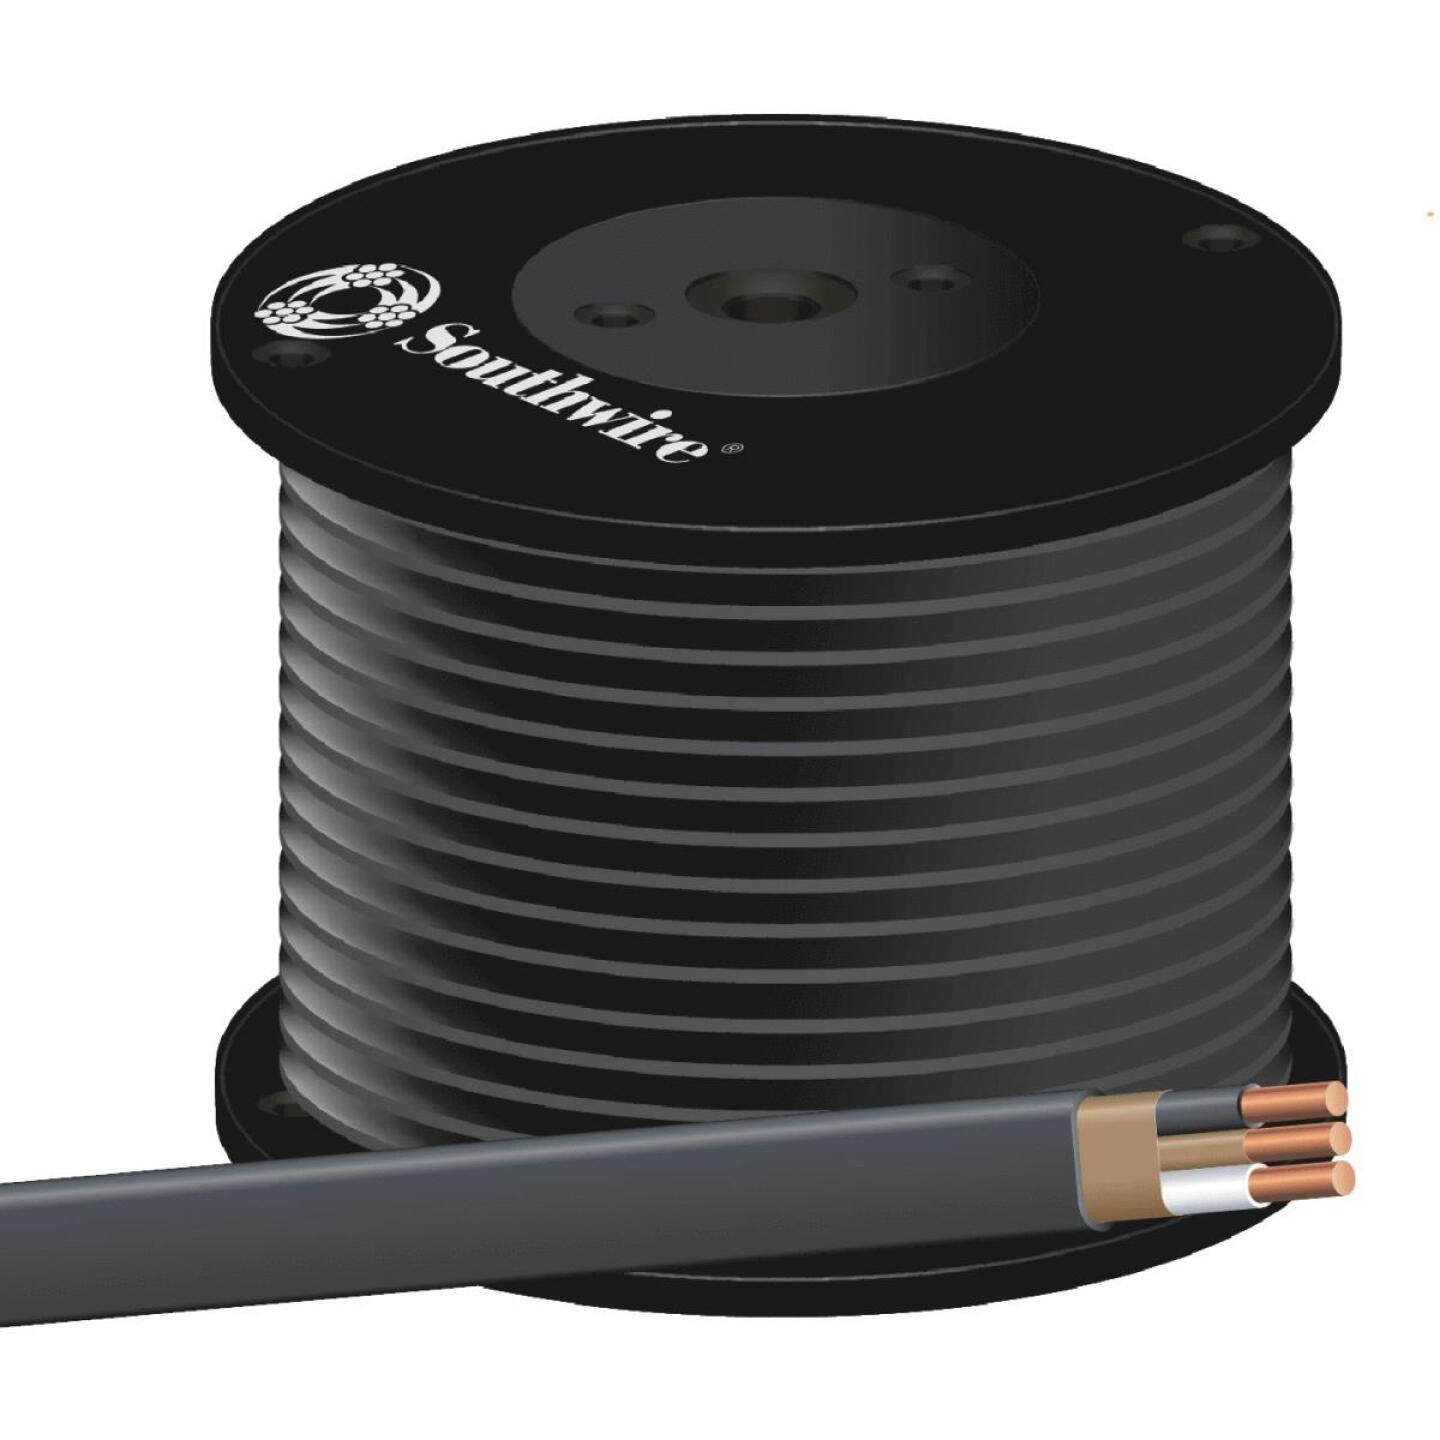 Romex 500 Ft. 6-2 Solid Black NMW/G Wire Image 1